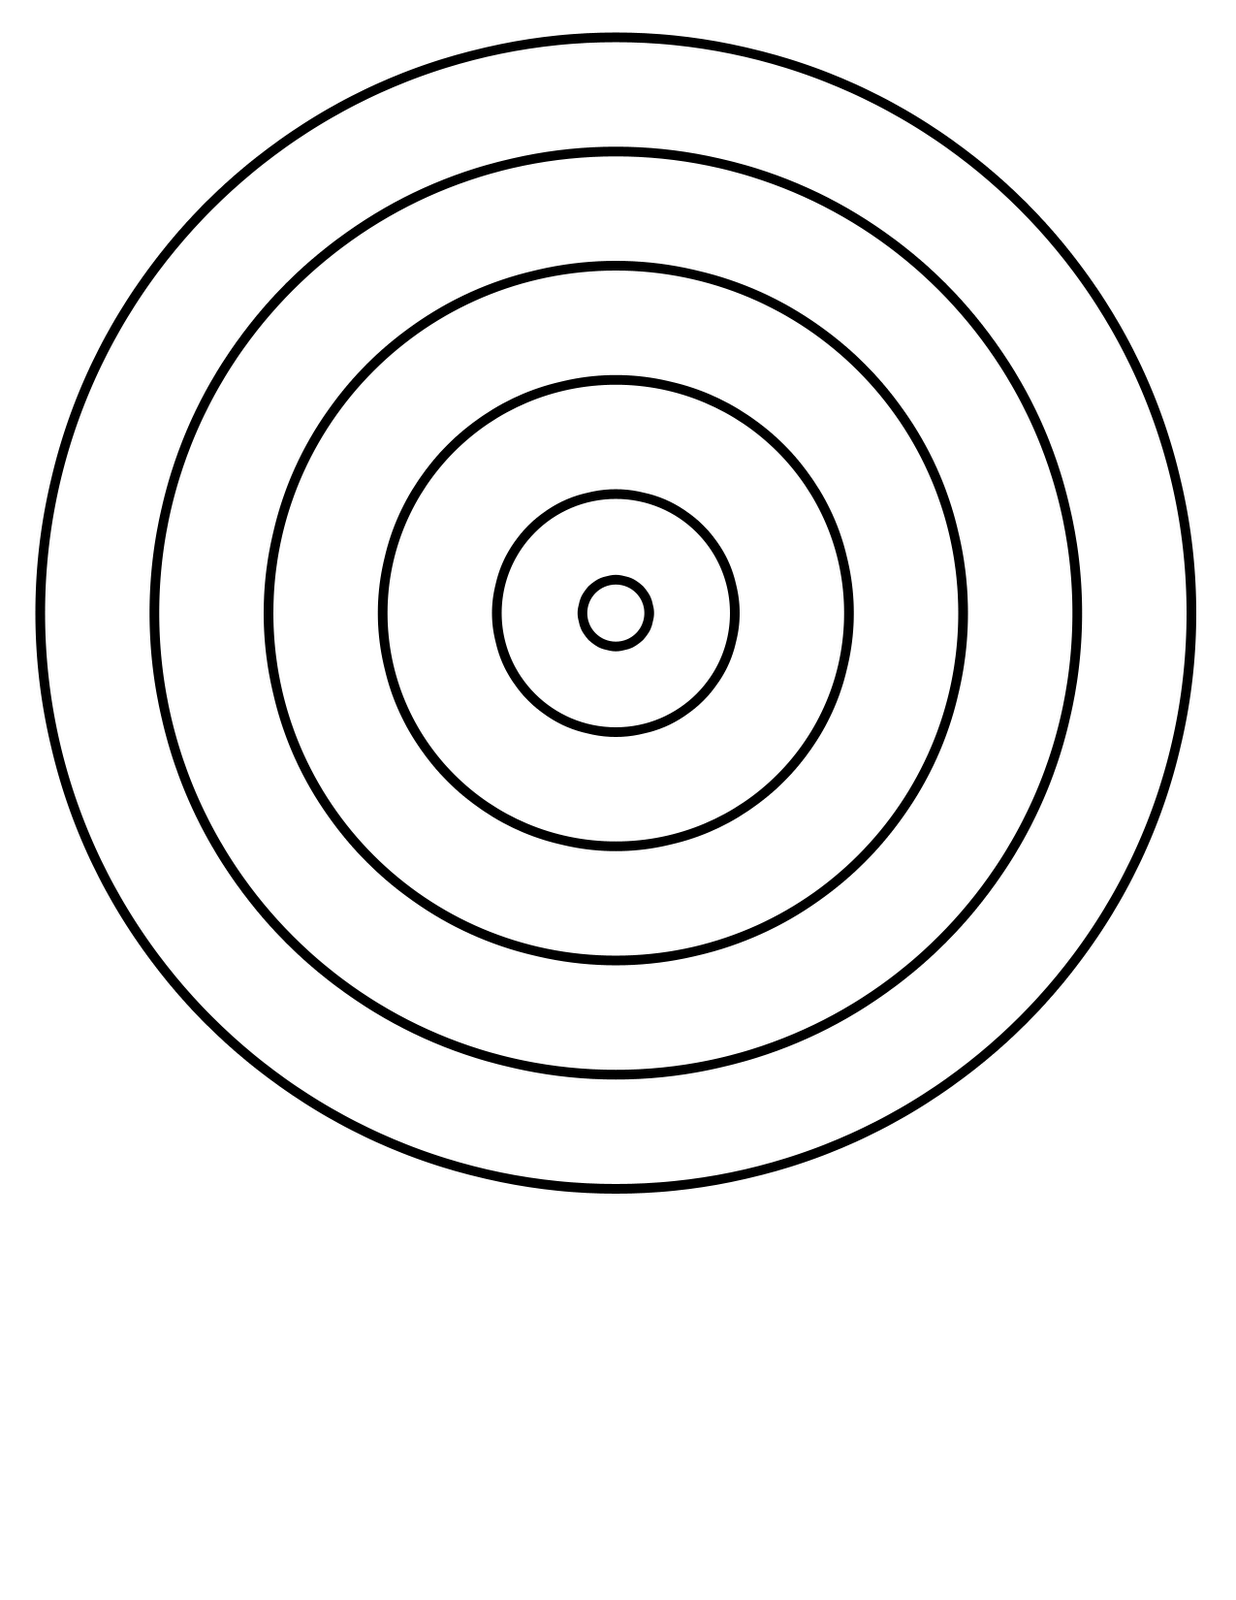 Archery Target Coloring Page Coloring Pages